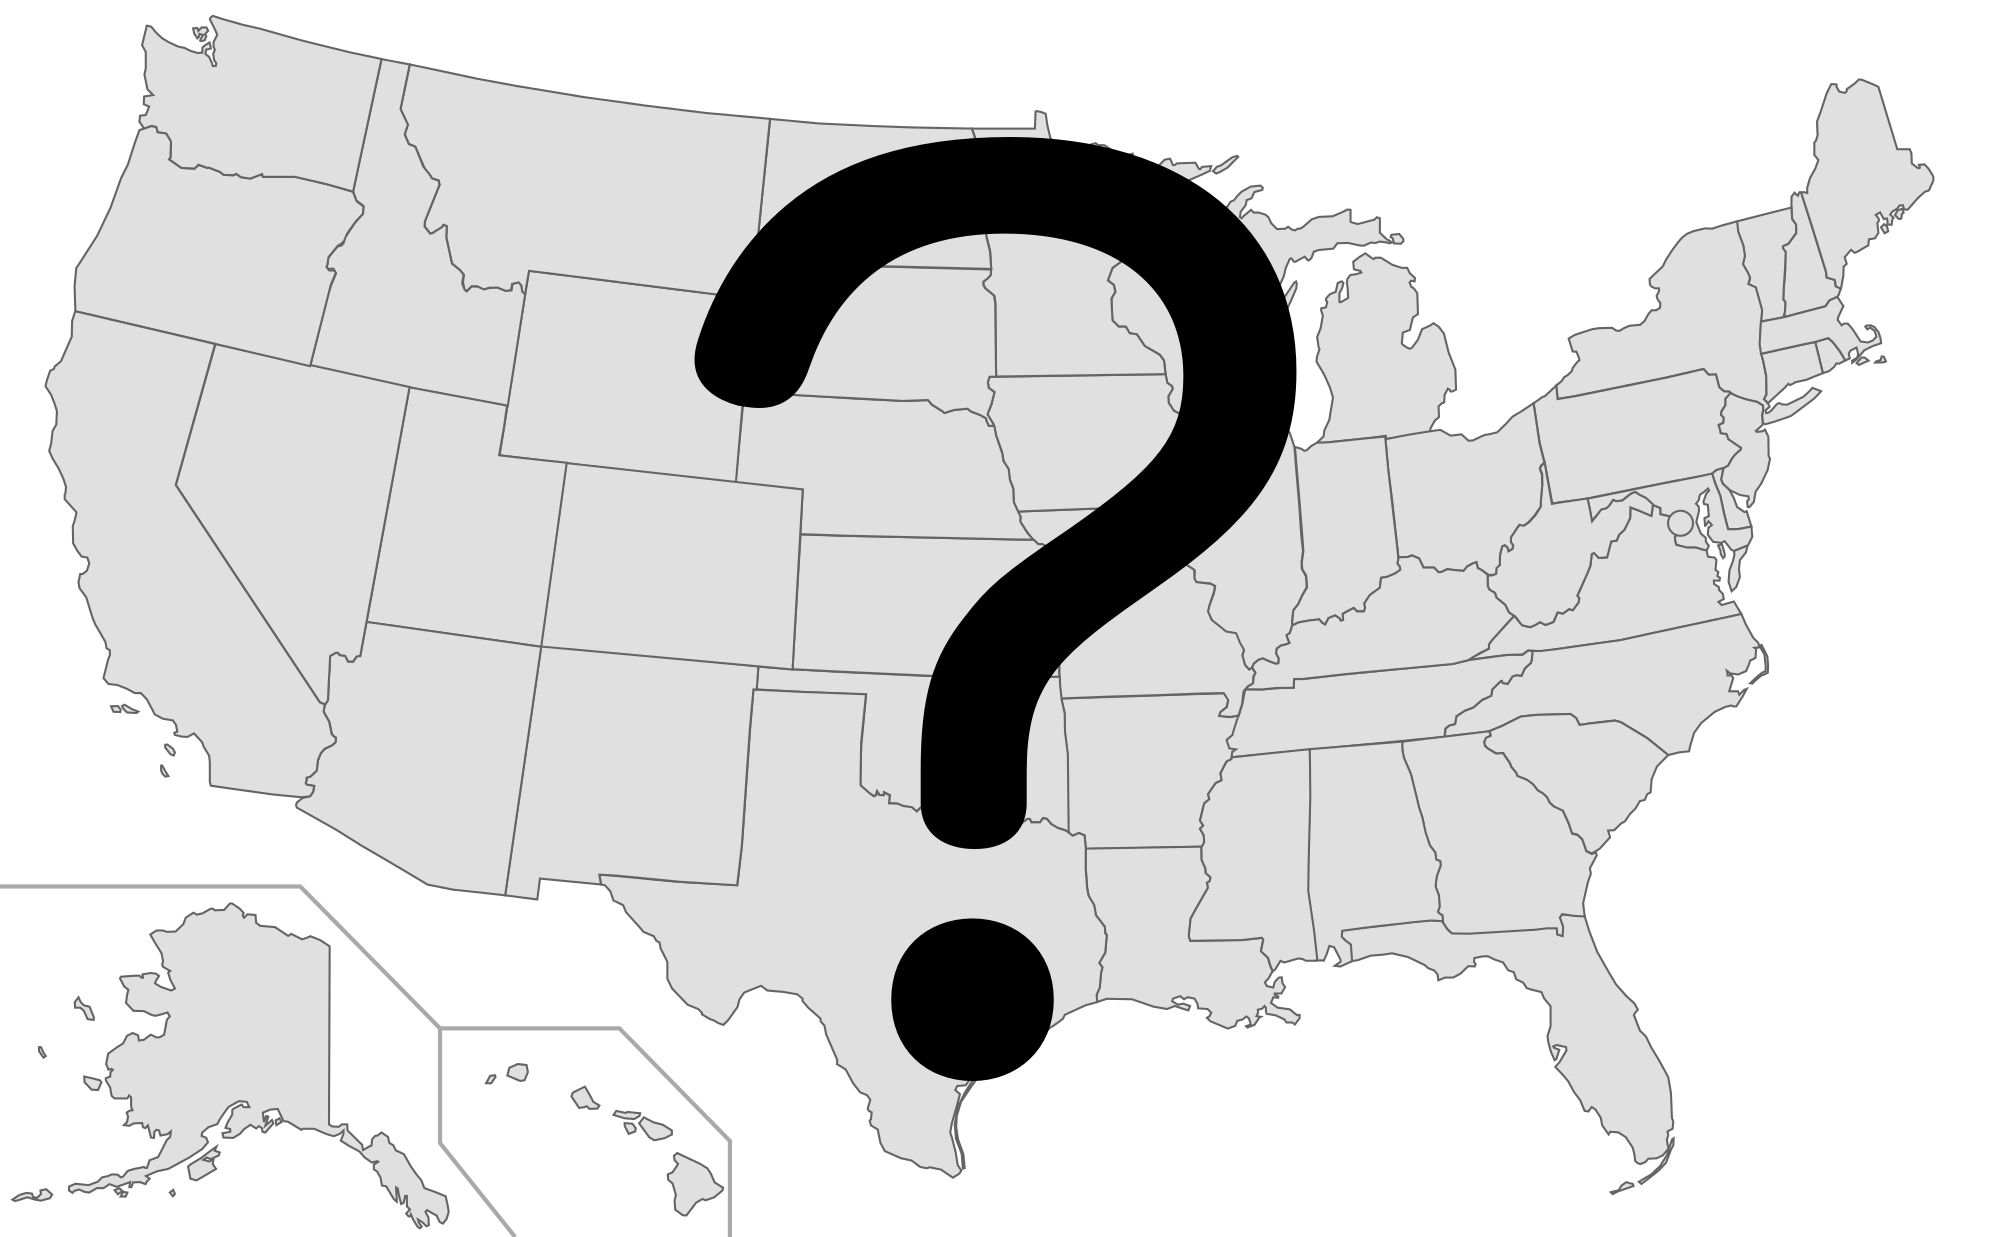 Blank Maps Of The US And Other Countries US And Canada - Blank us map high resolution